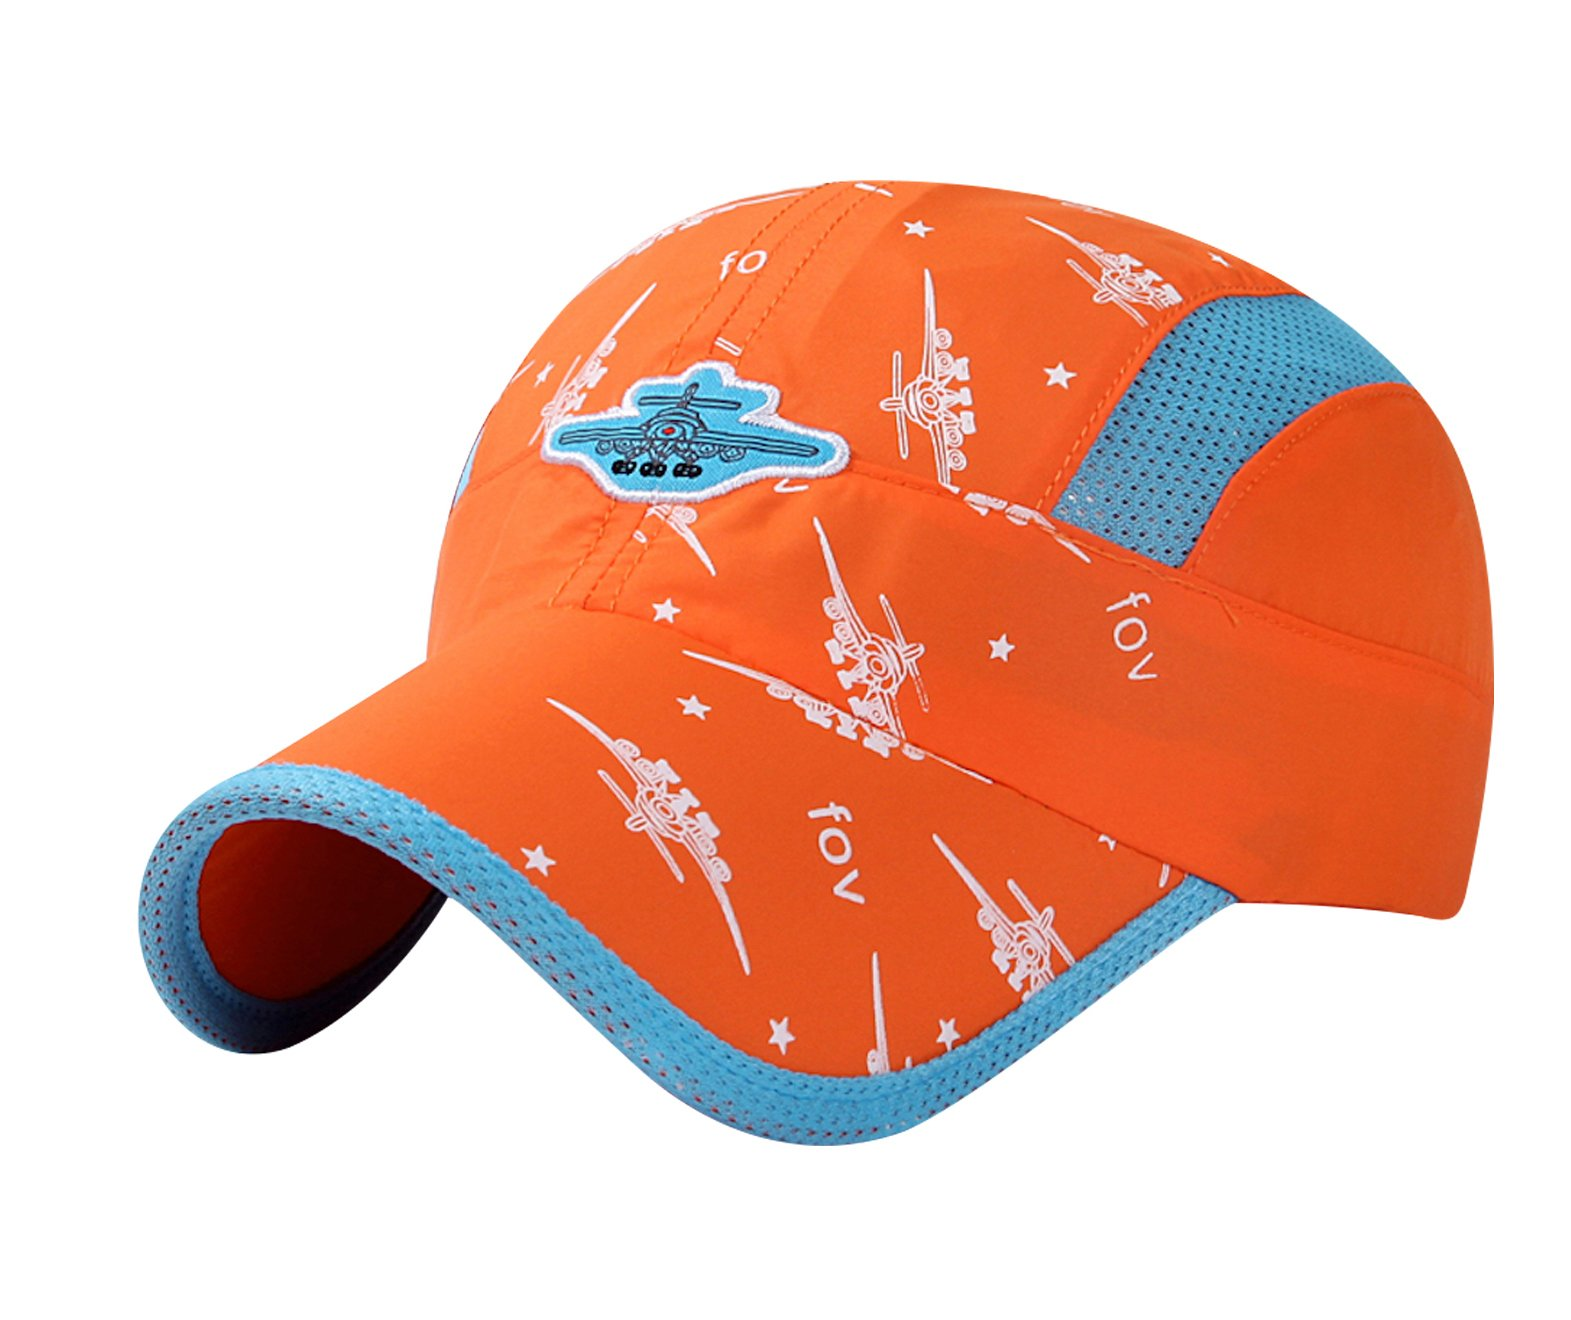 Home Prefer Kids Boys Lightweight Quick Drying Sun Hat Outdoor Sports UV Protection Caps Mesh Side Ball Cap Orange